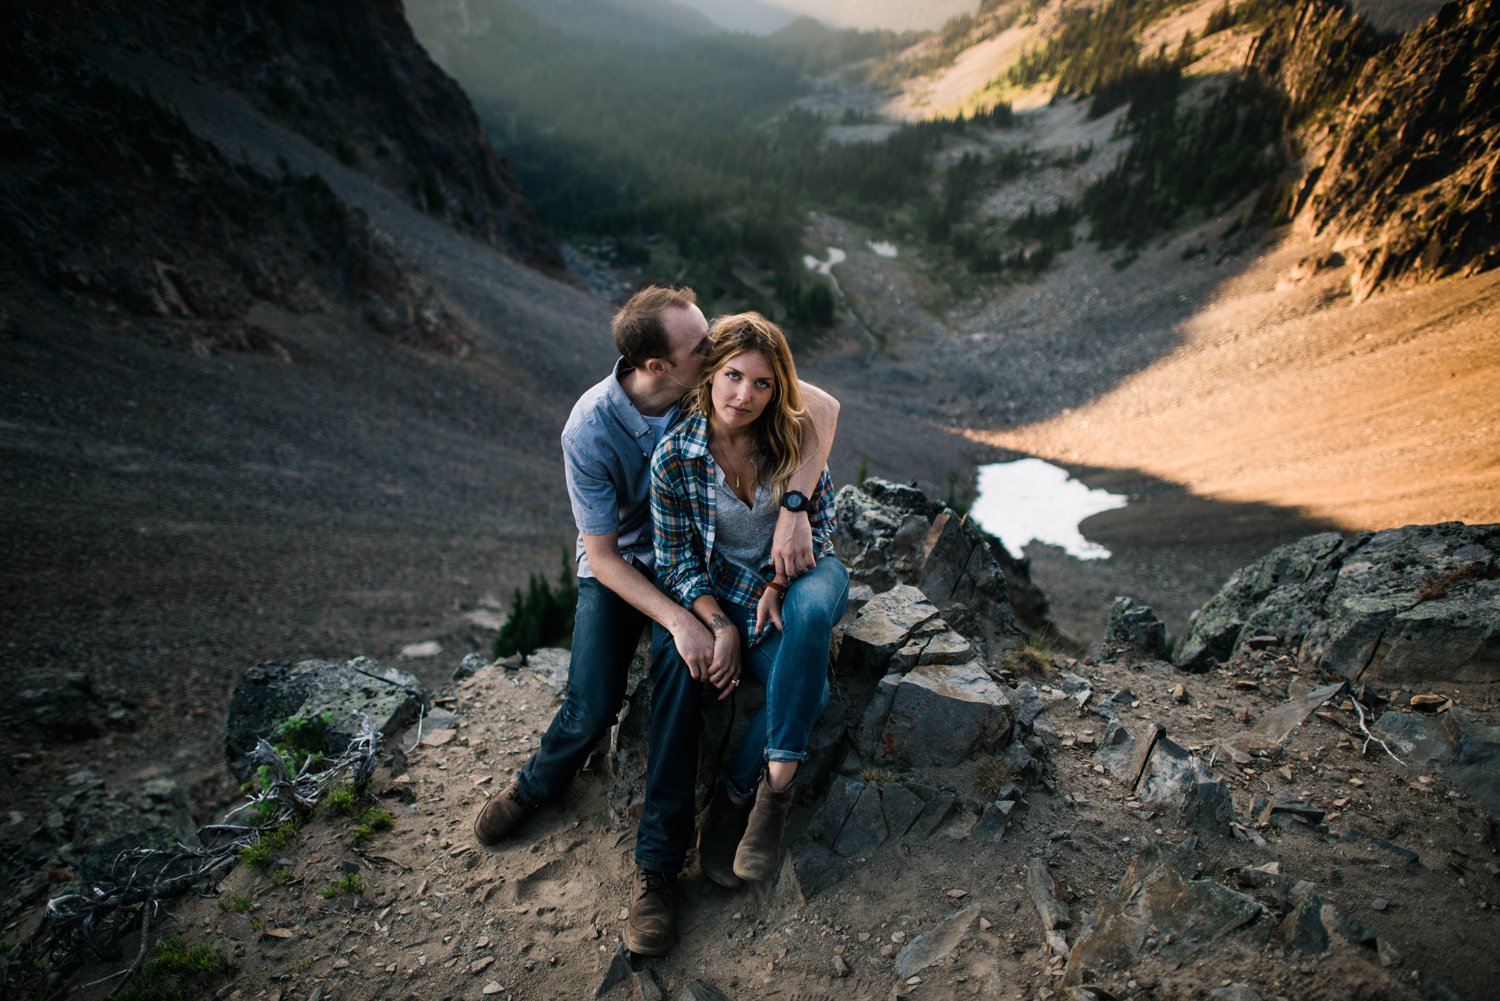 020-mt-rainier-adventure-engagement-session-seattle-film-photographer-ryan-flynn.jpg